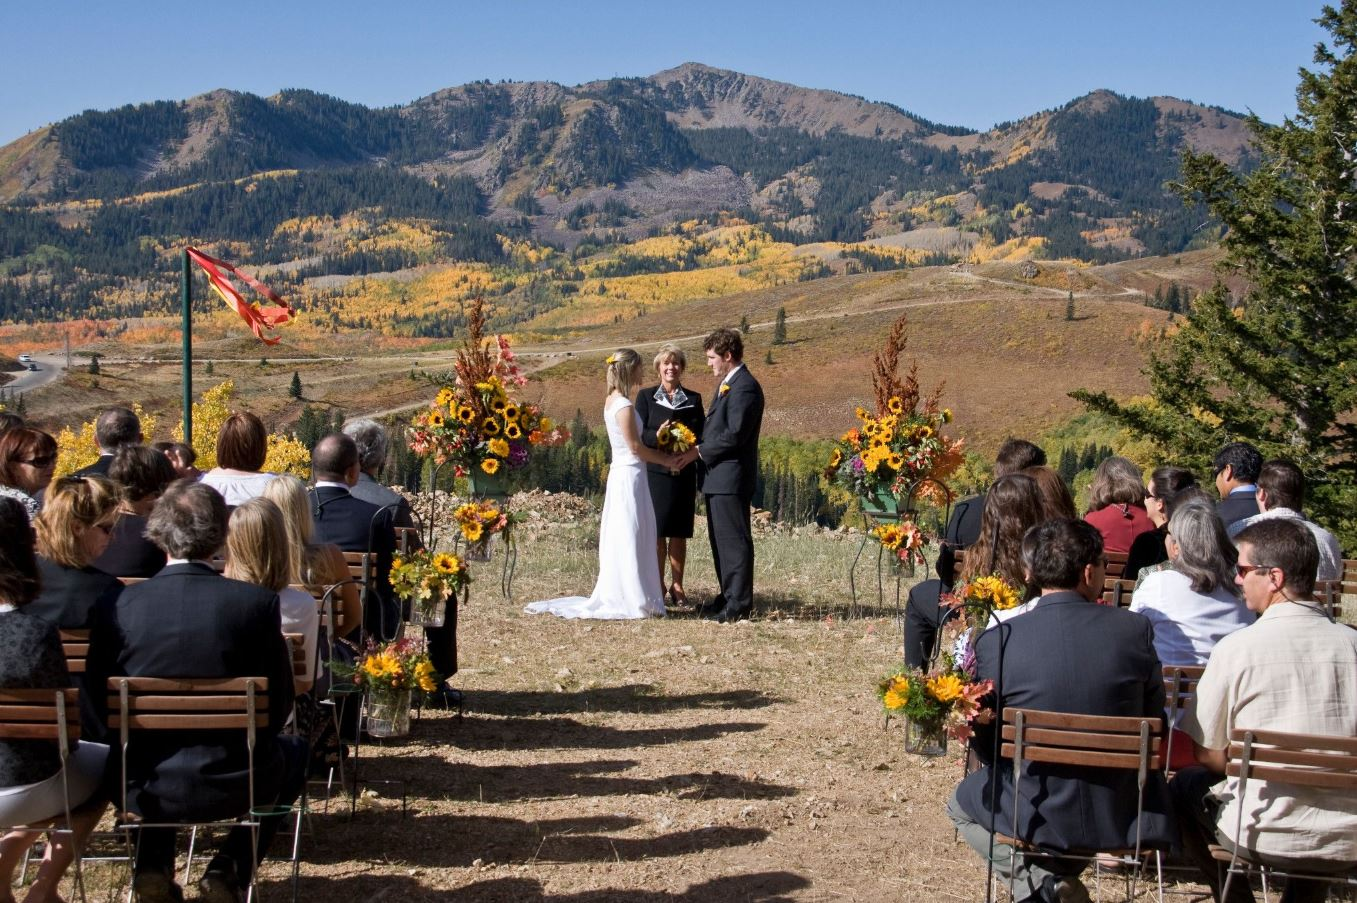 Two people getting married in the mountains of Park City, Utah.